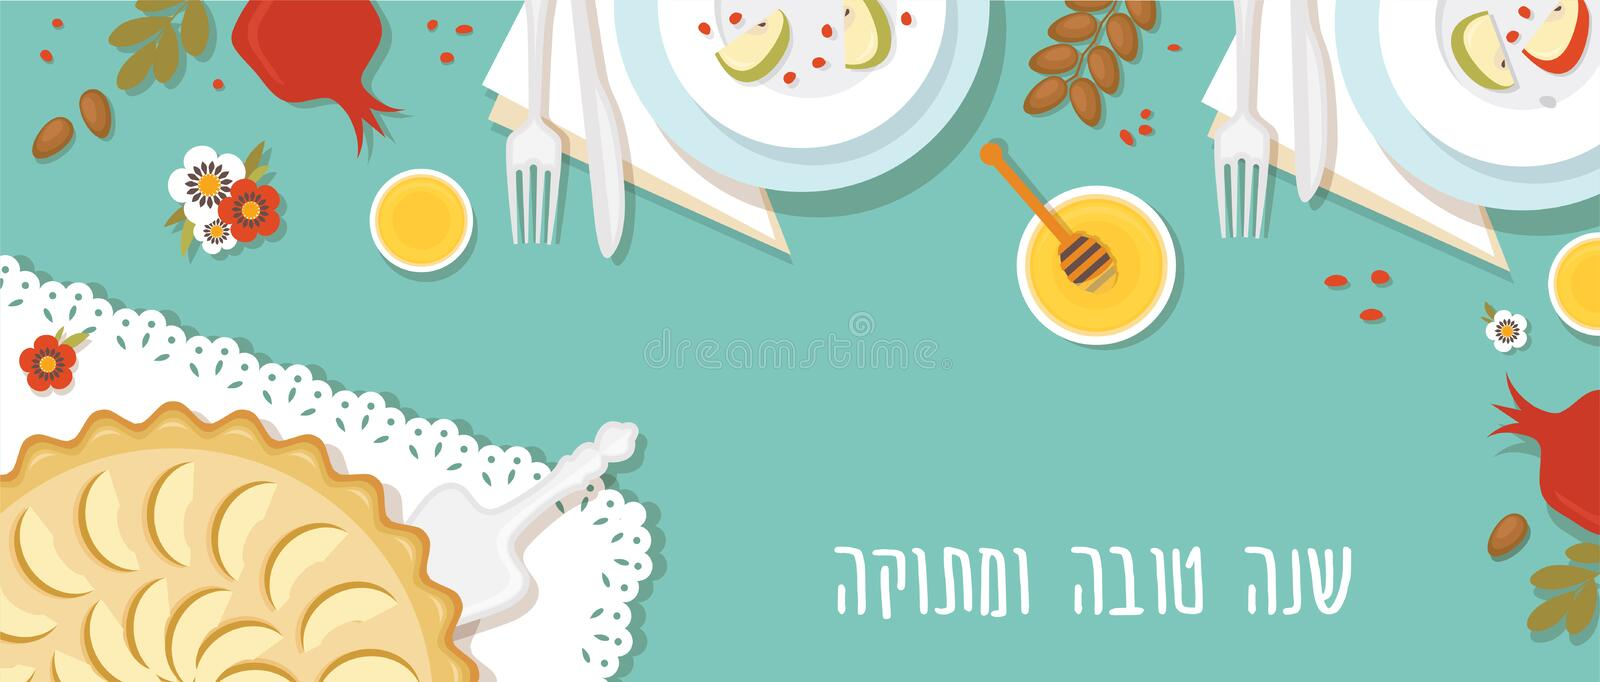 Traditional table for Rosh Hashanah, Jewish new year, dinner with traditional symbols. happy and sweet new year in royalty free illustration